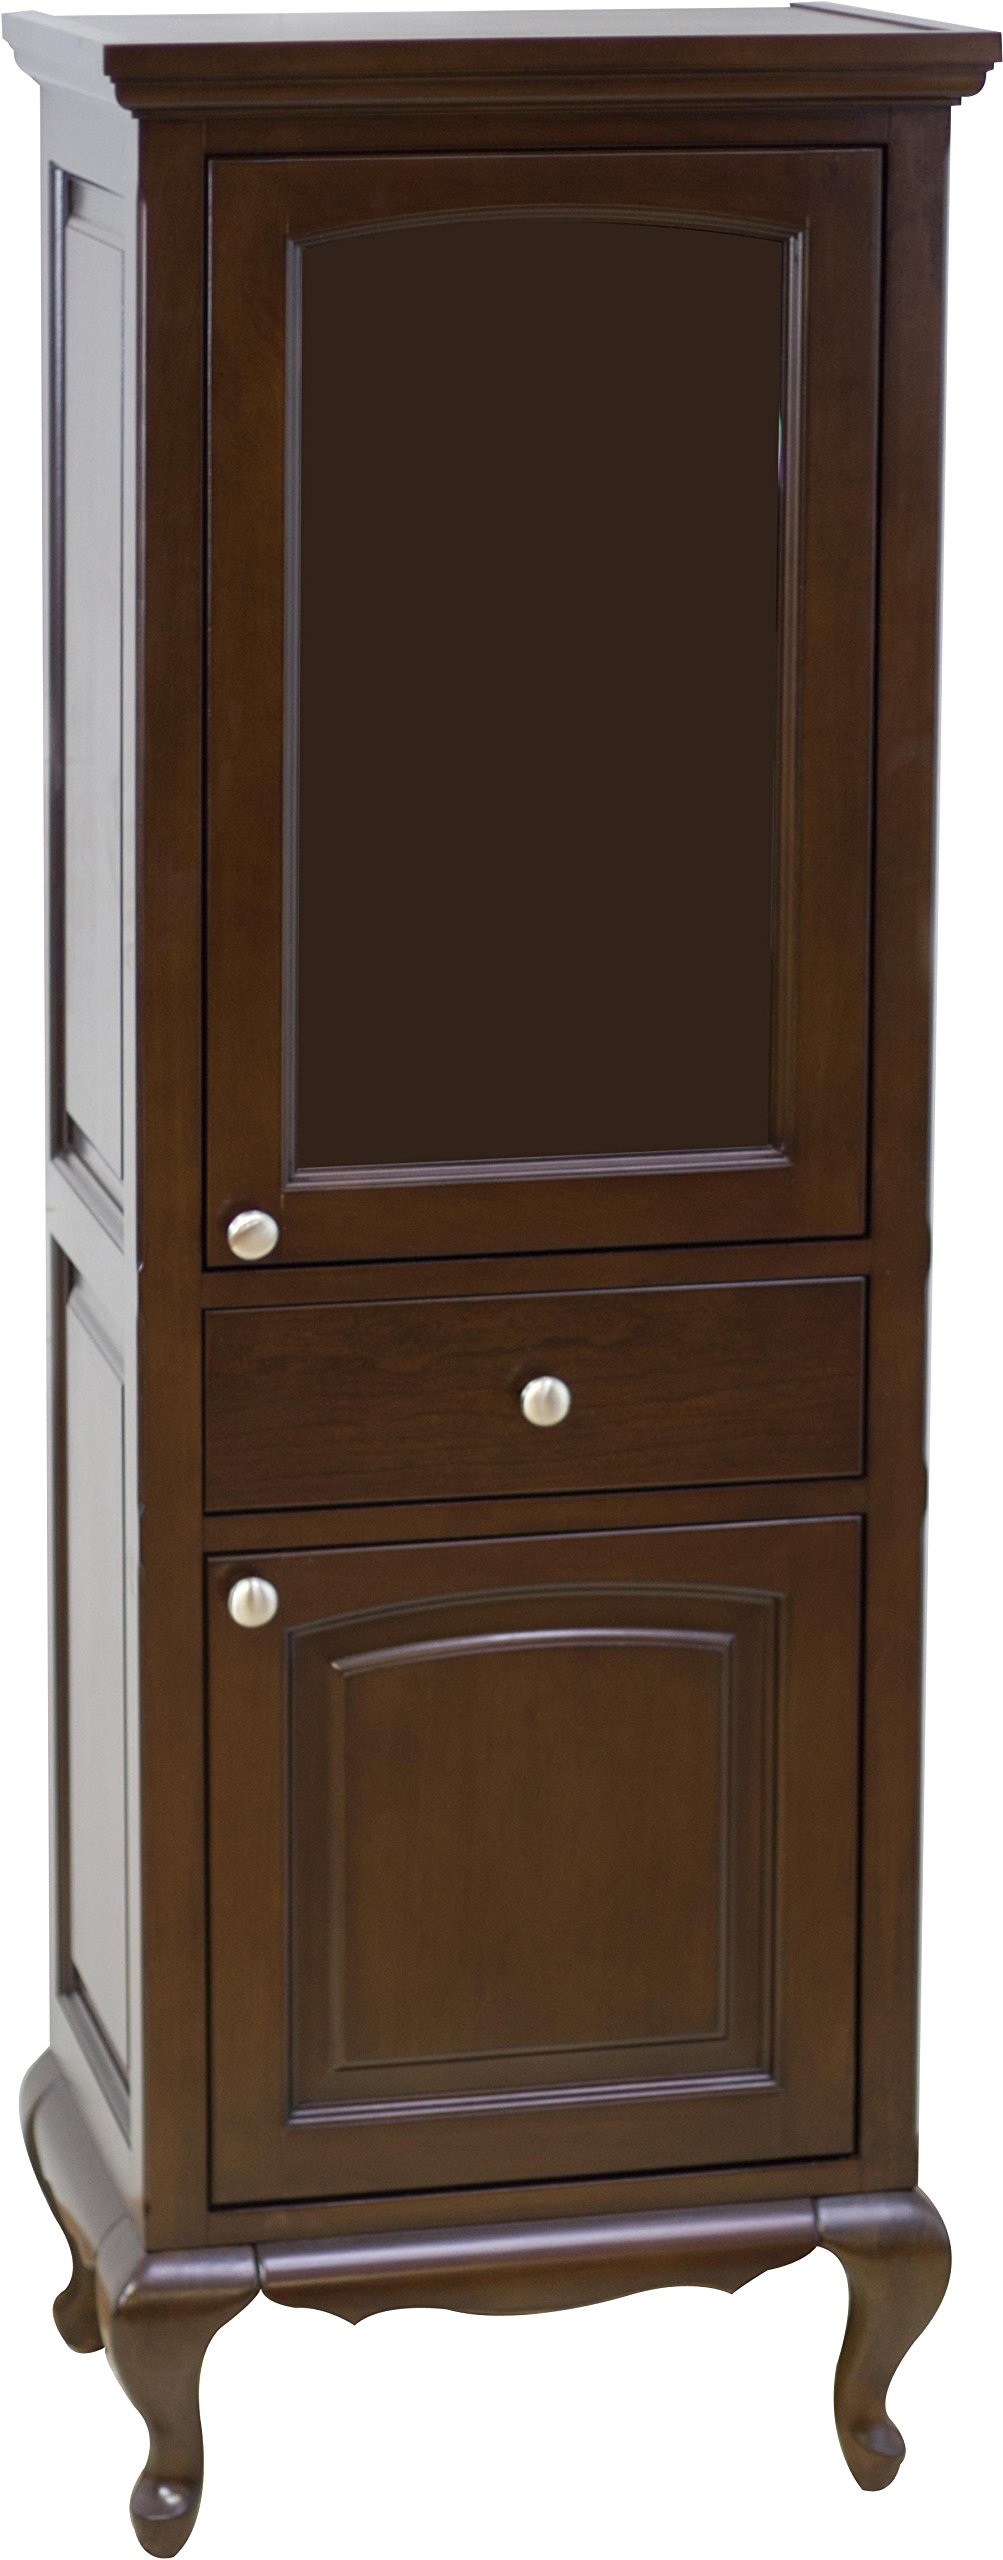 American Imaginations 57   22-Inch  Victorian Style Solid Wood Framed Linen Tower with Soft-Close Cabinet Doors, Walnut Finish